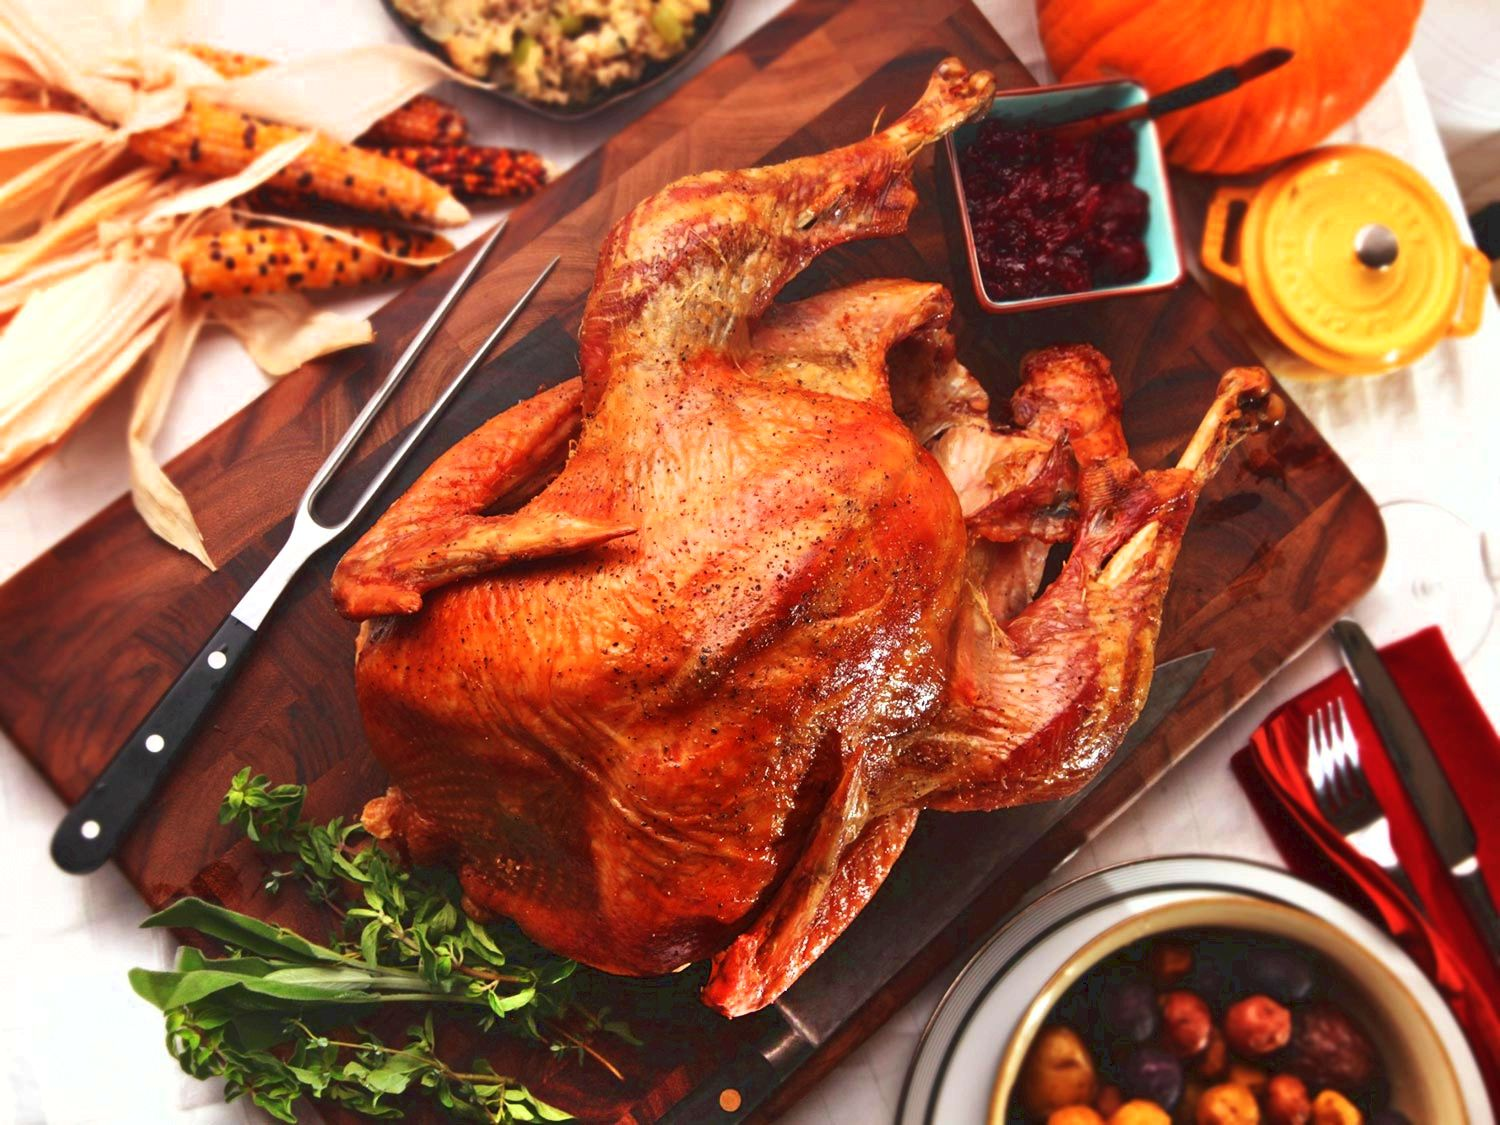 Bye bye, bland bird: 13 recipes for crispy, juicy thanksgiving poultry And look for our guides